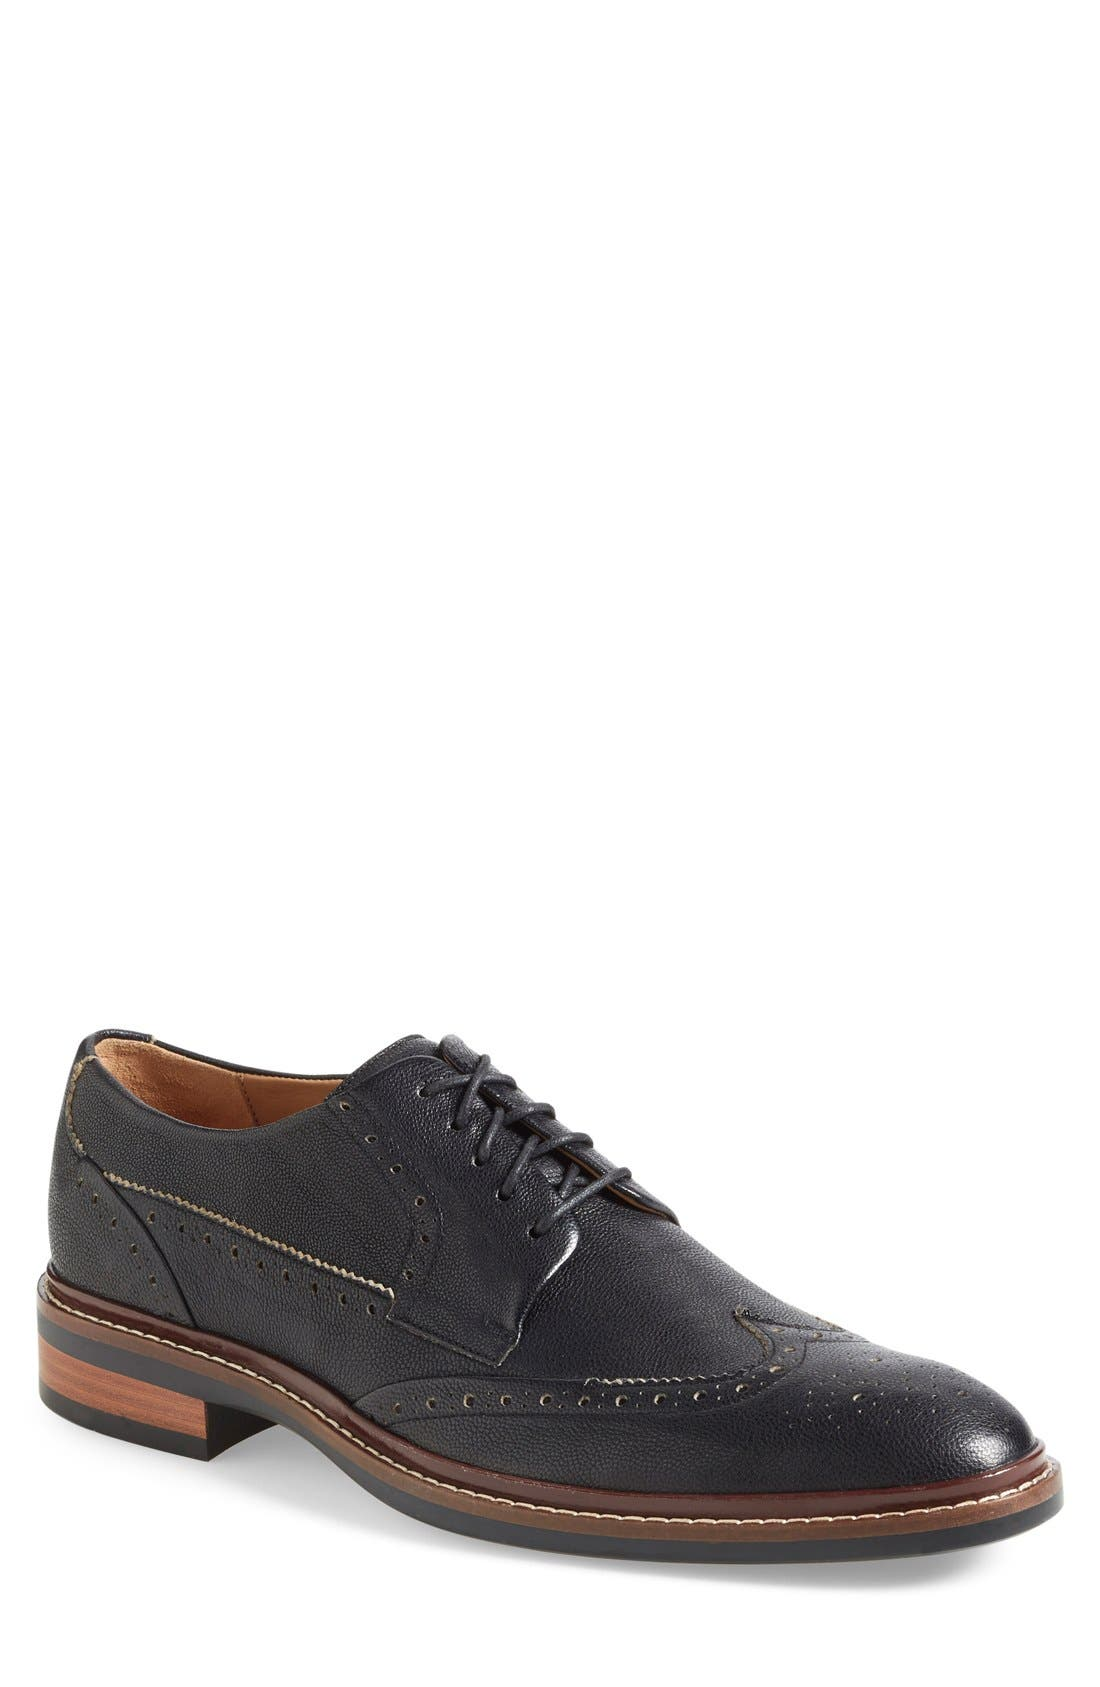 Warren Welt Wingtip,                         Main,                         color, BLACK MILL LEATHER